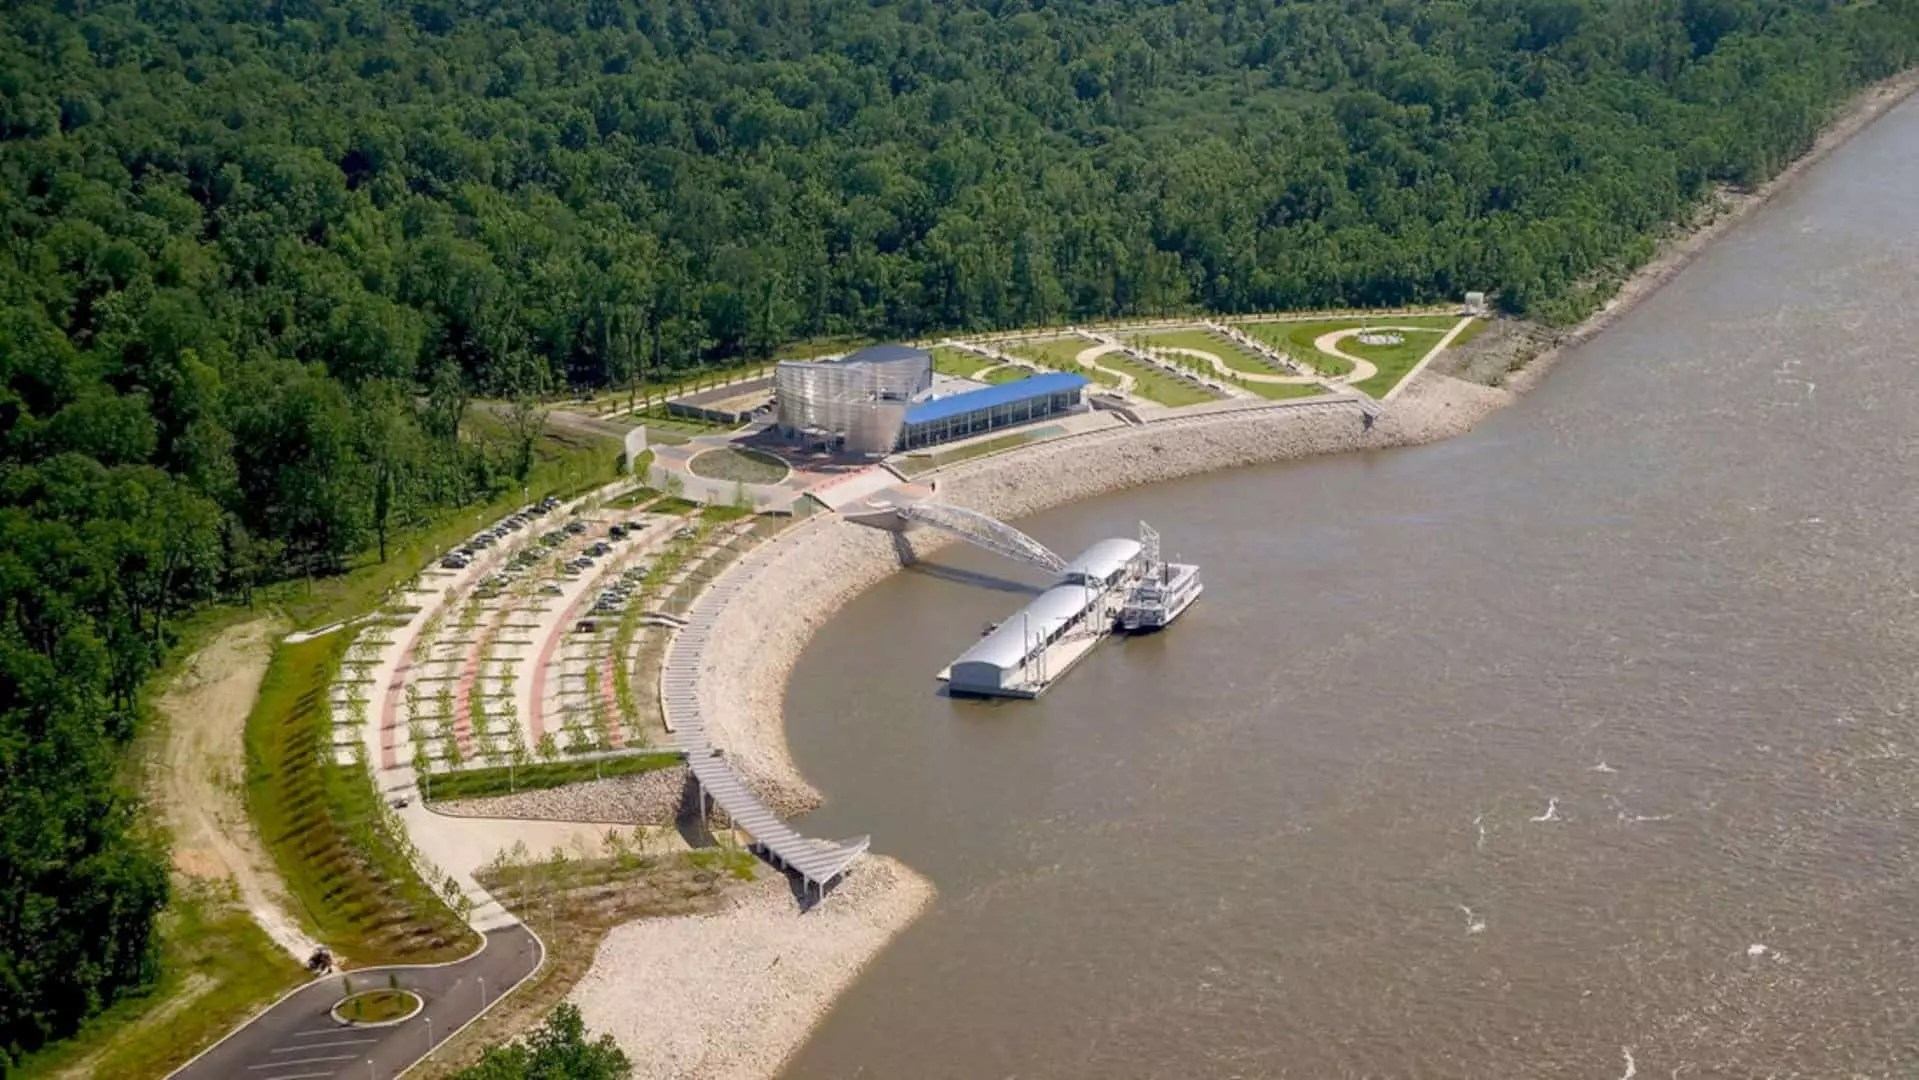 Tunica River Park: A Large Park near the Mississippi River with A Scenic Look